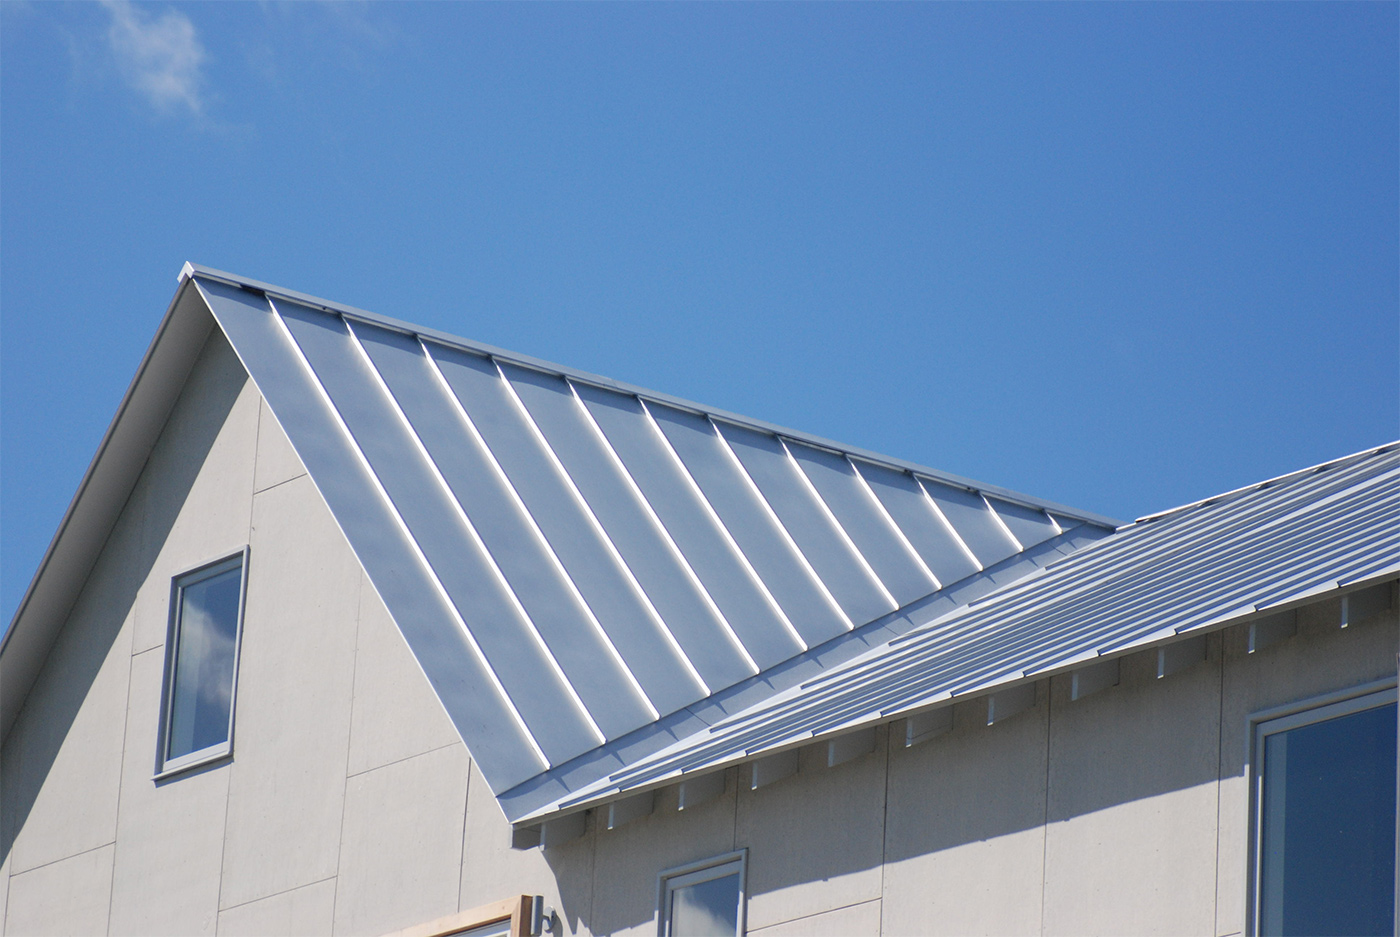 exterior_roof